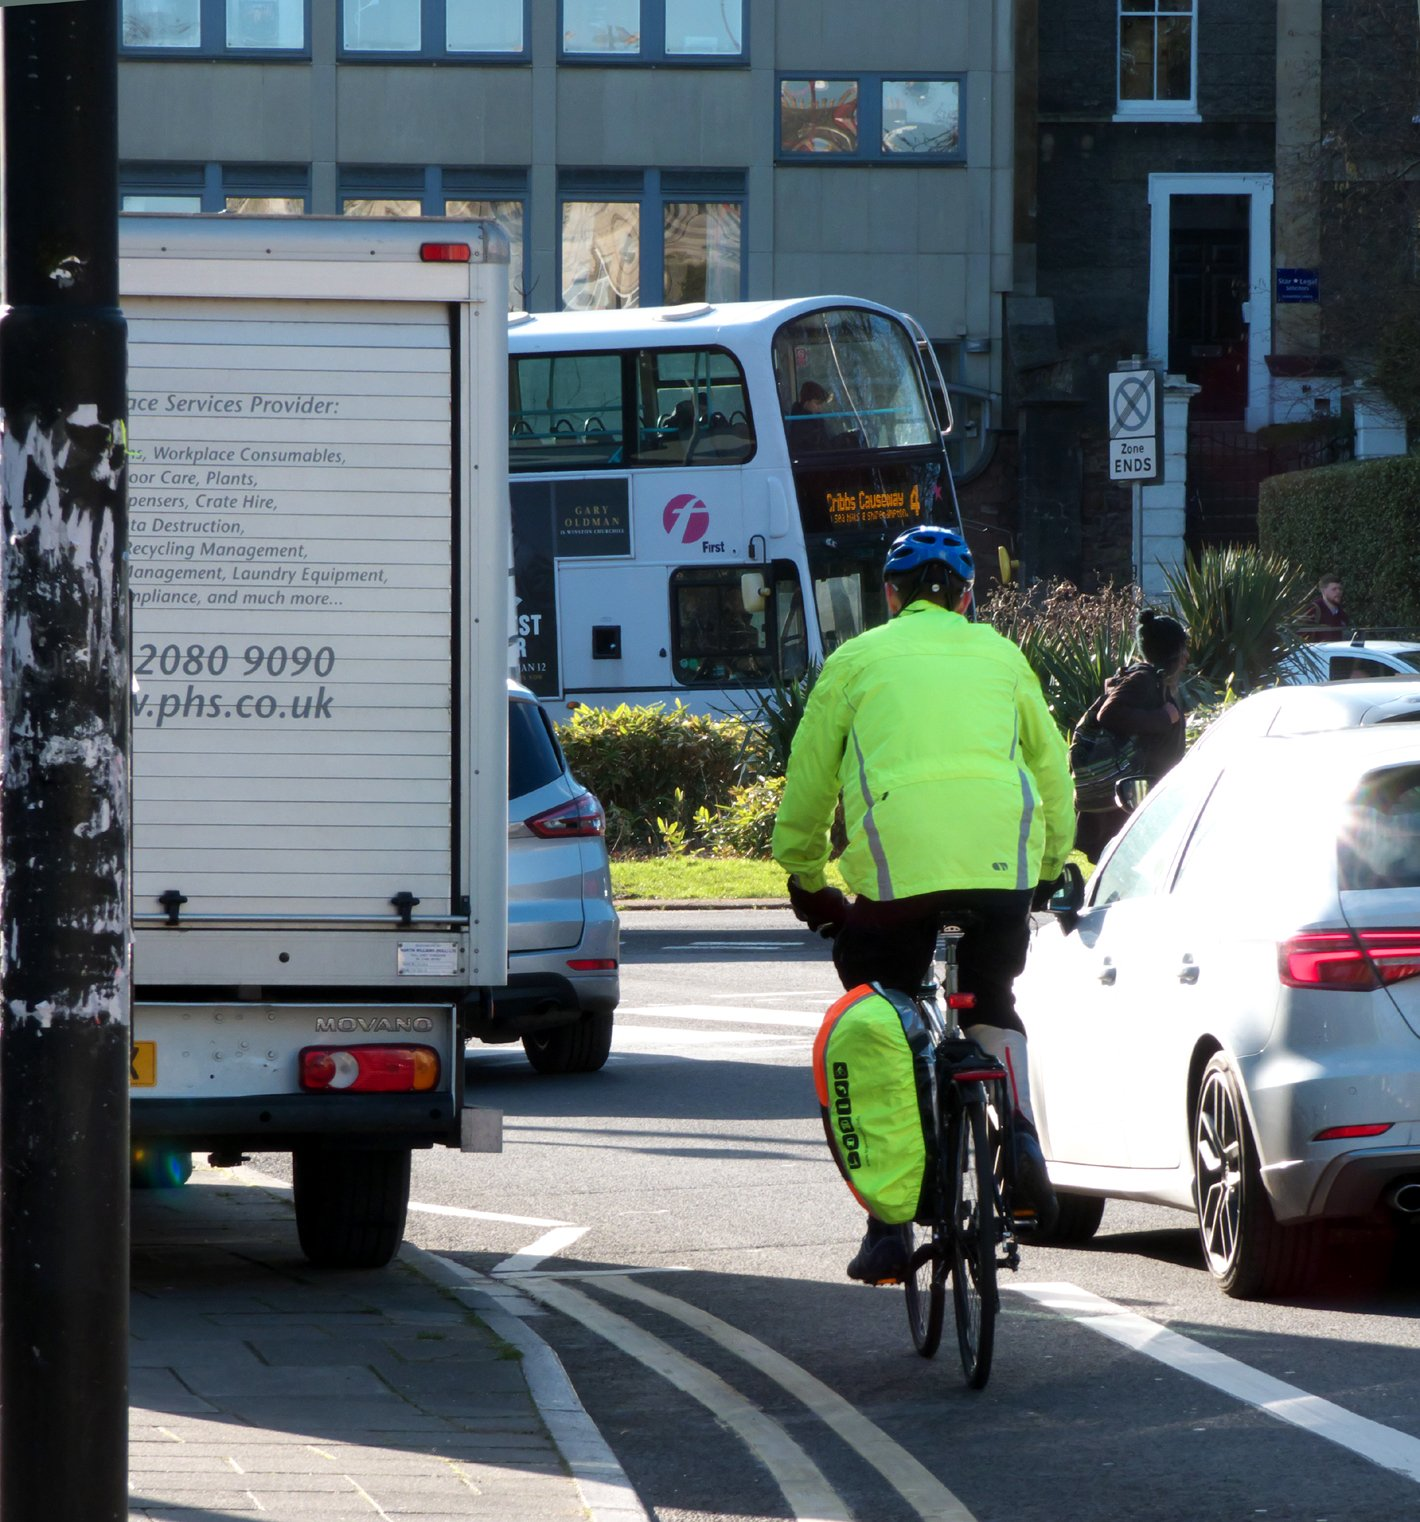 Cycling Casualties and Police Enforcement Action